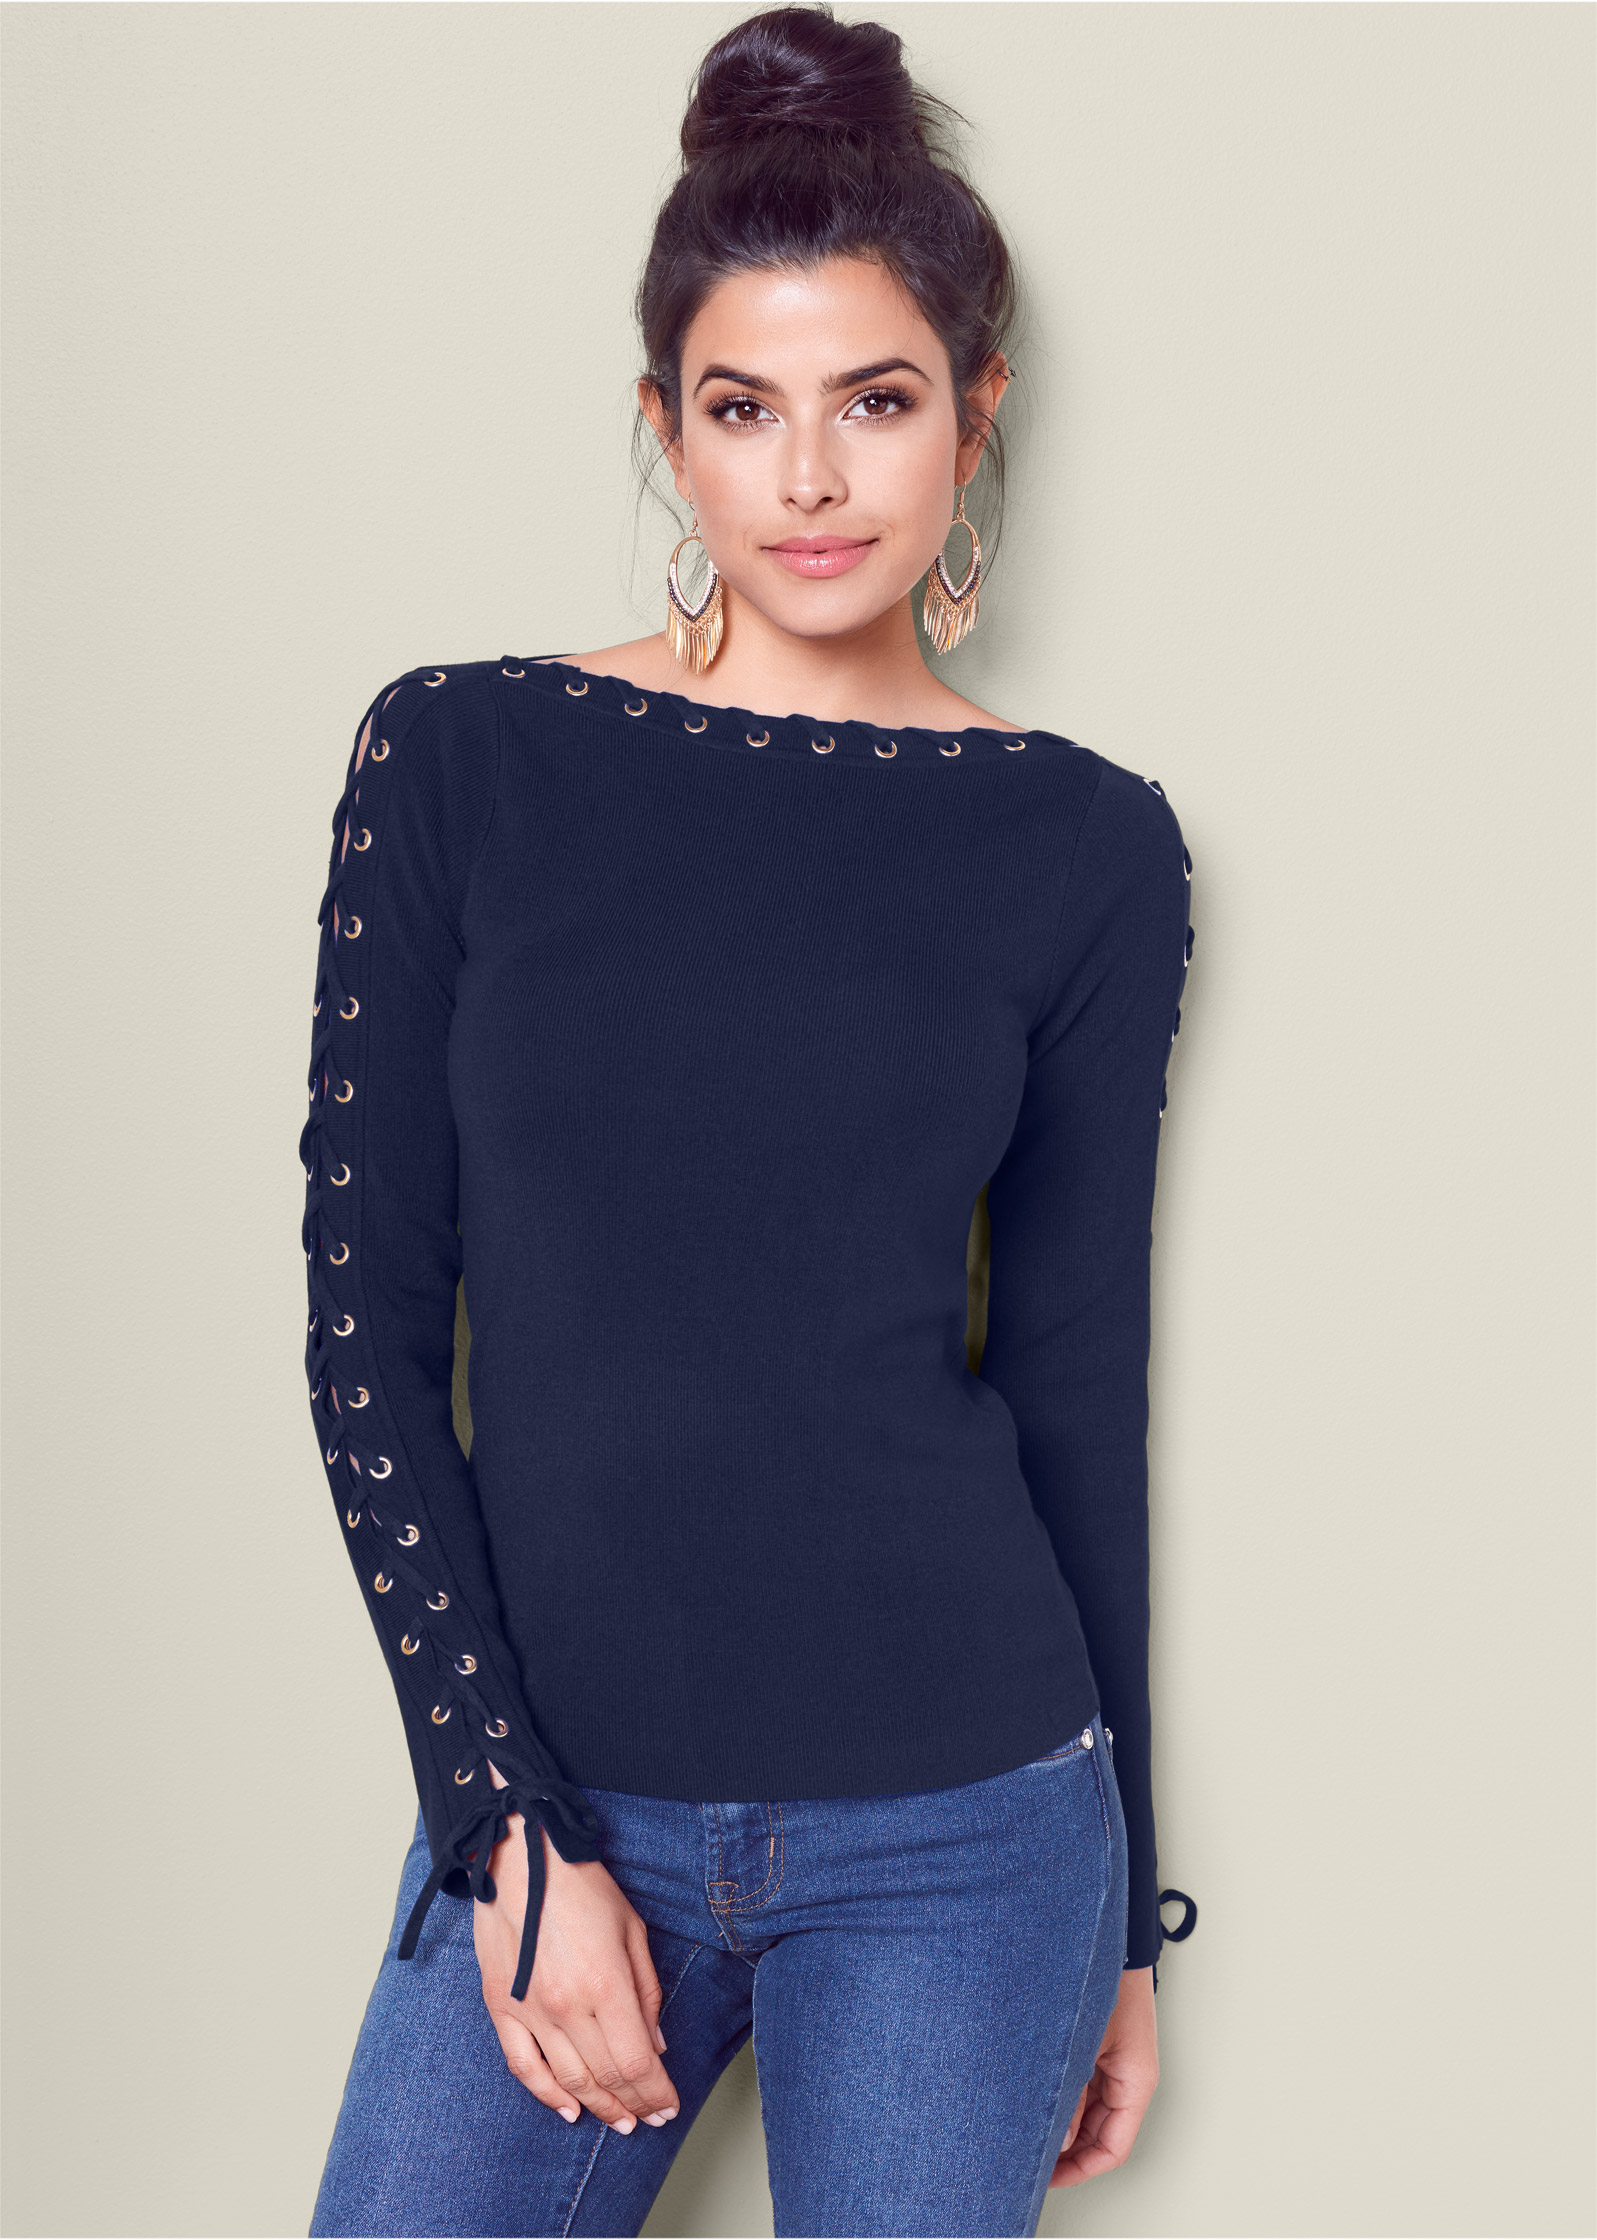 VENUS | LACE UP BOAT NECK SWEATER in Navy